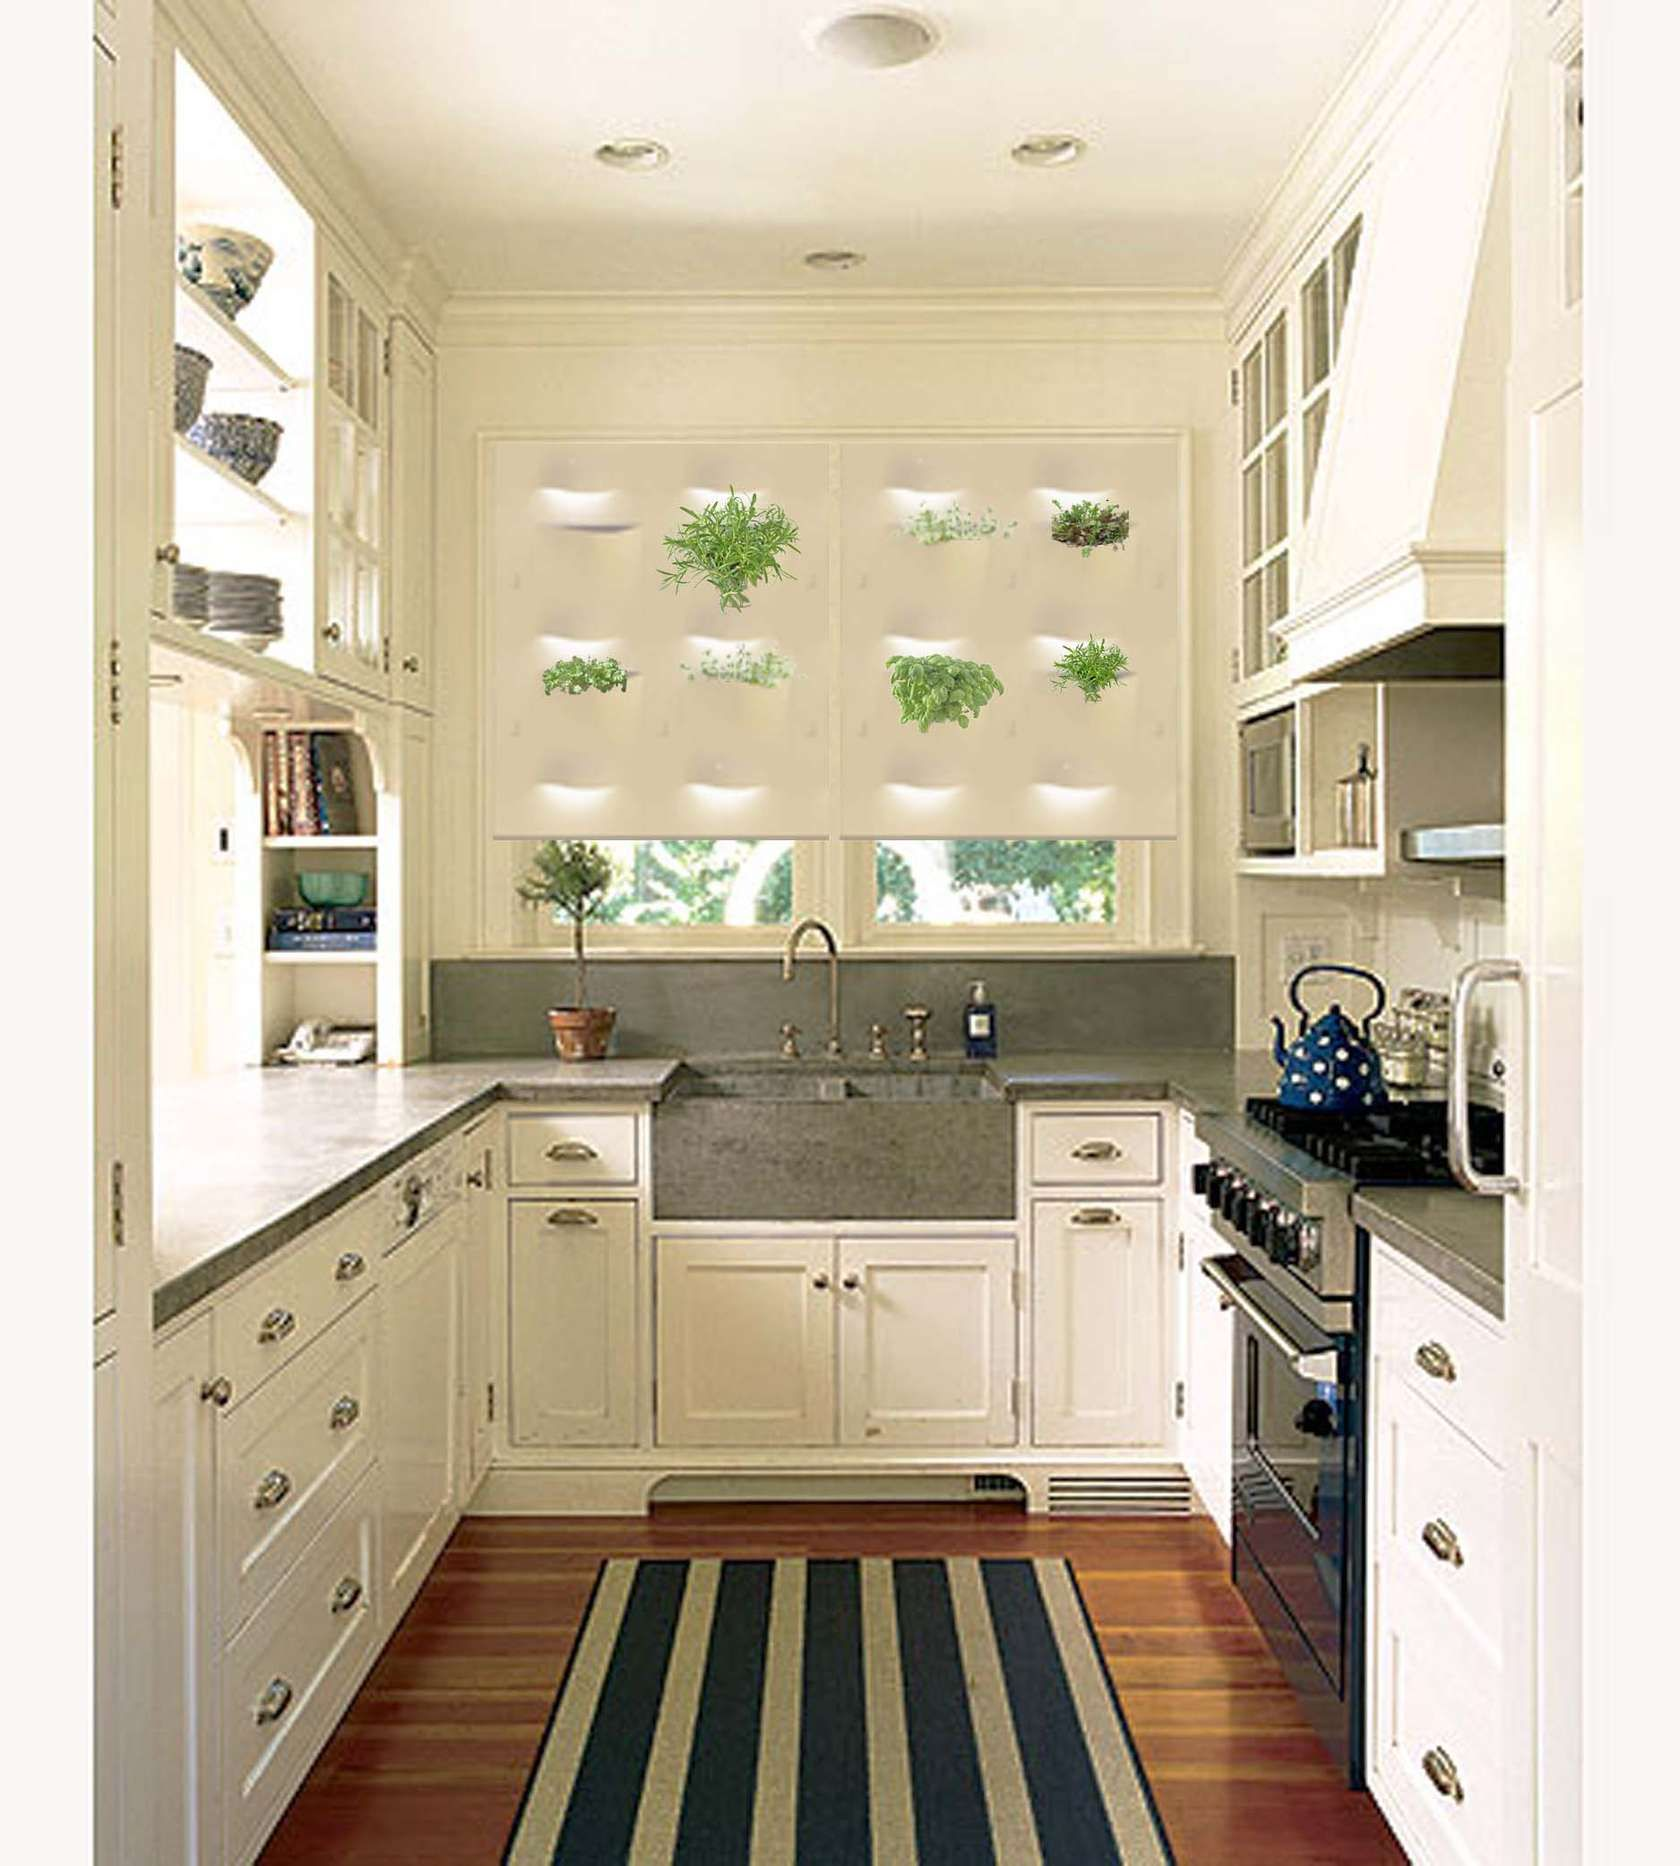 Matching Narrow Dining Table For Tiny Kitchen Kitchen Remodel